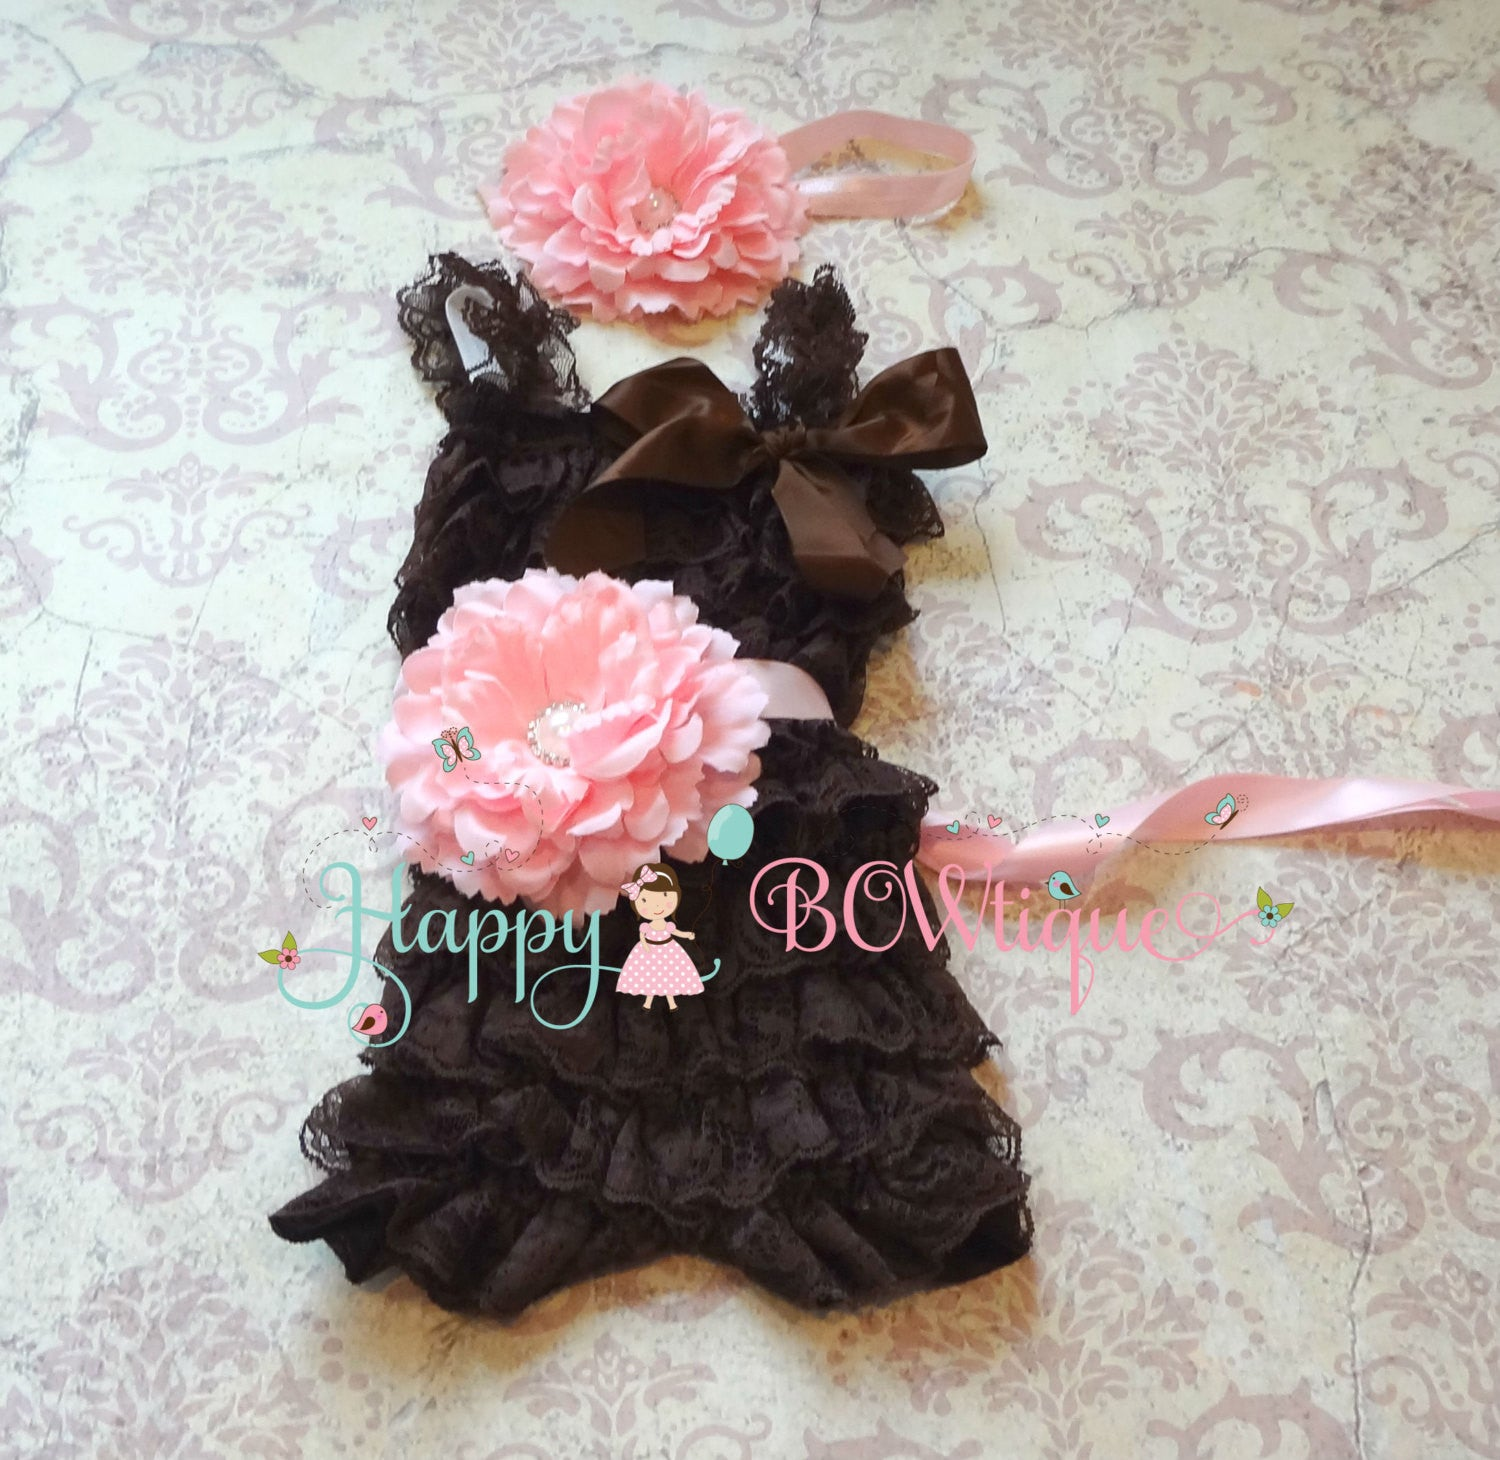 Chocolate Pink Flower Romper set - Happy BOWtique - children's clothing, Baby Girl clothing